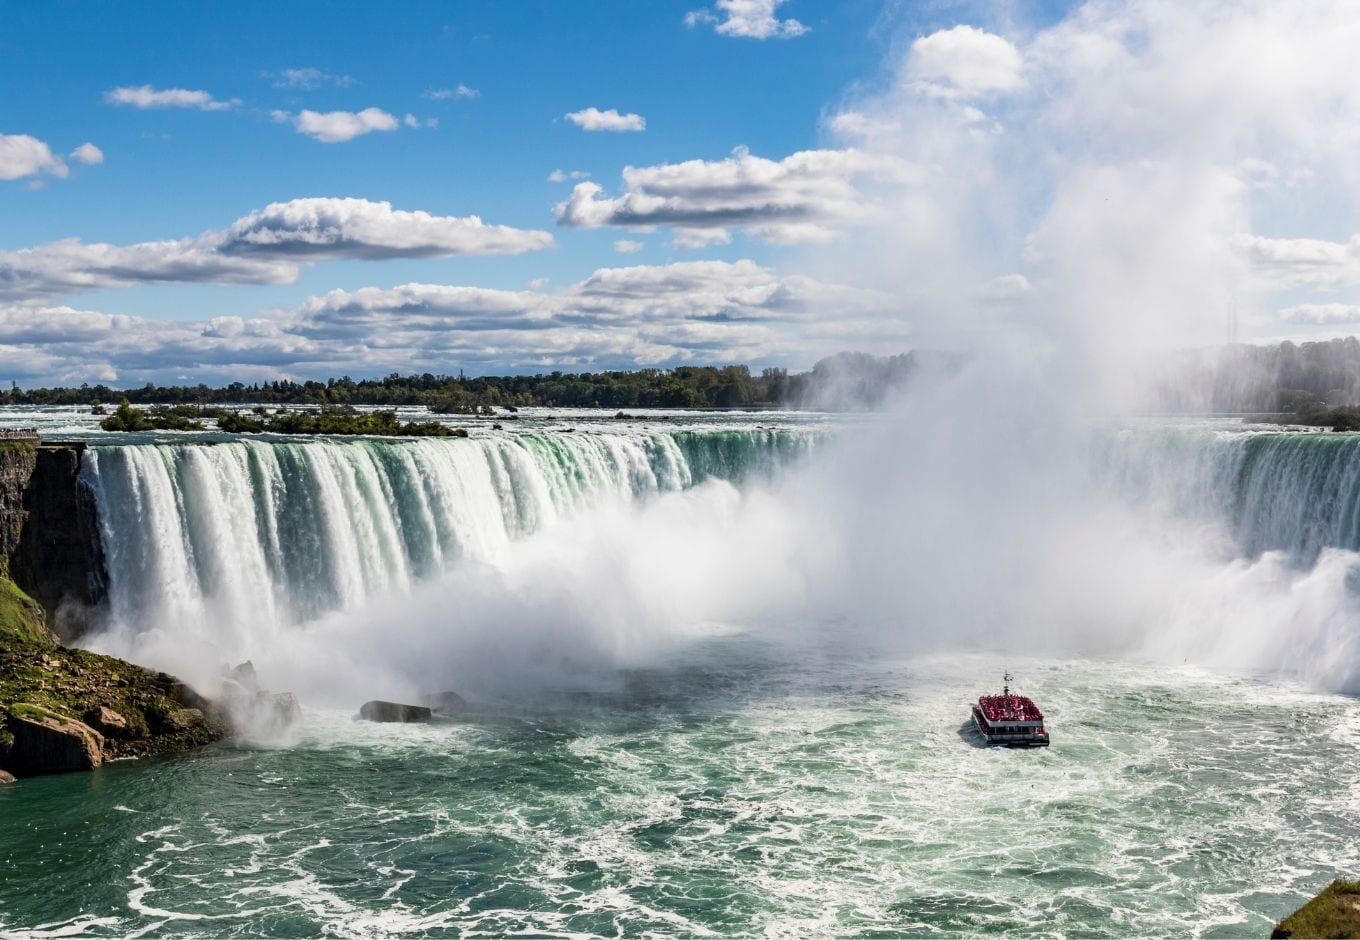 View of the Niagara Falls during the day.